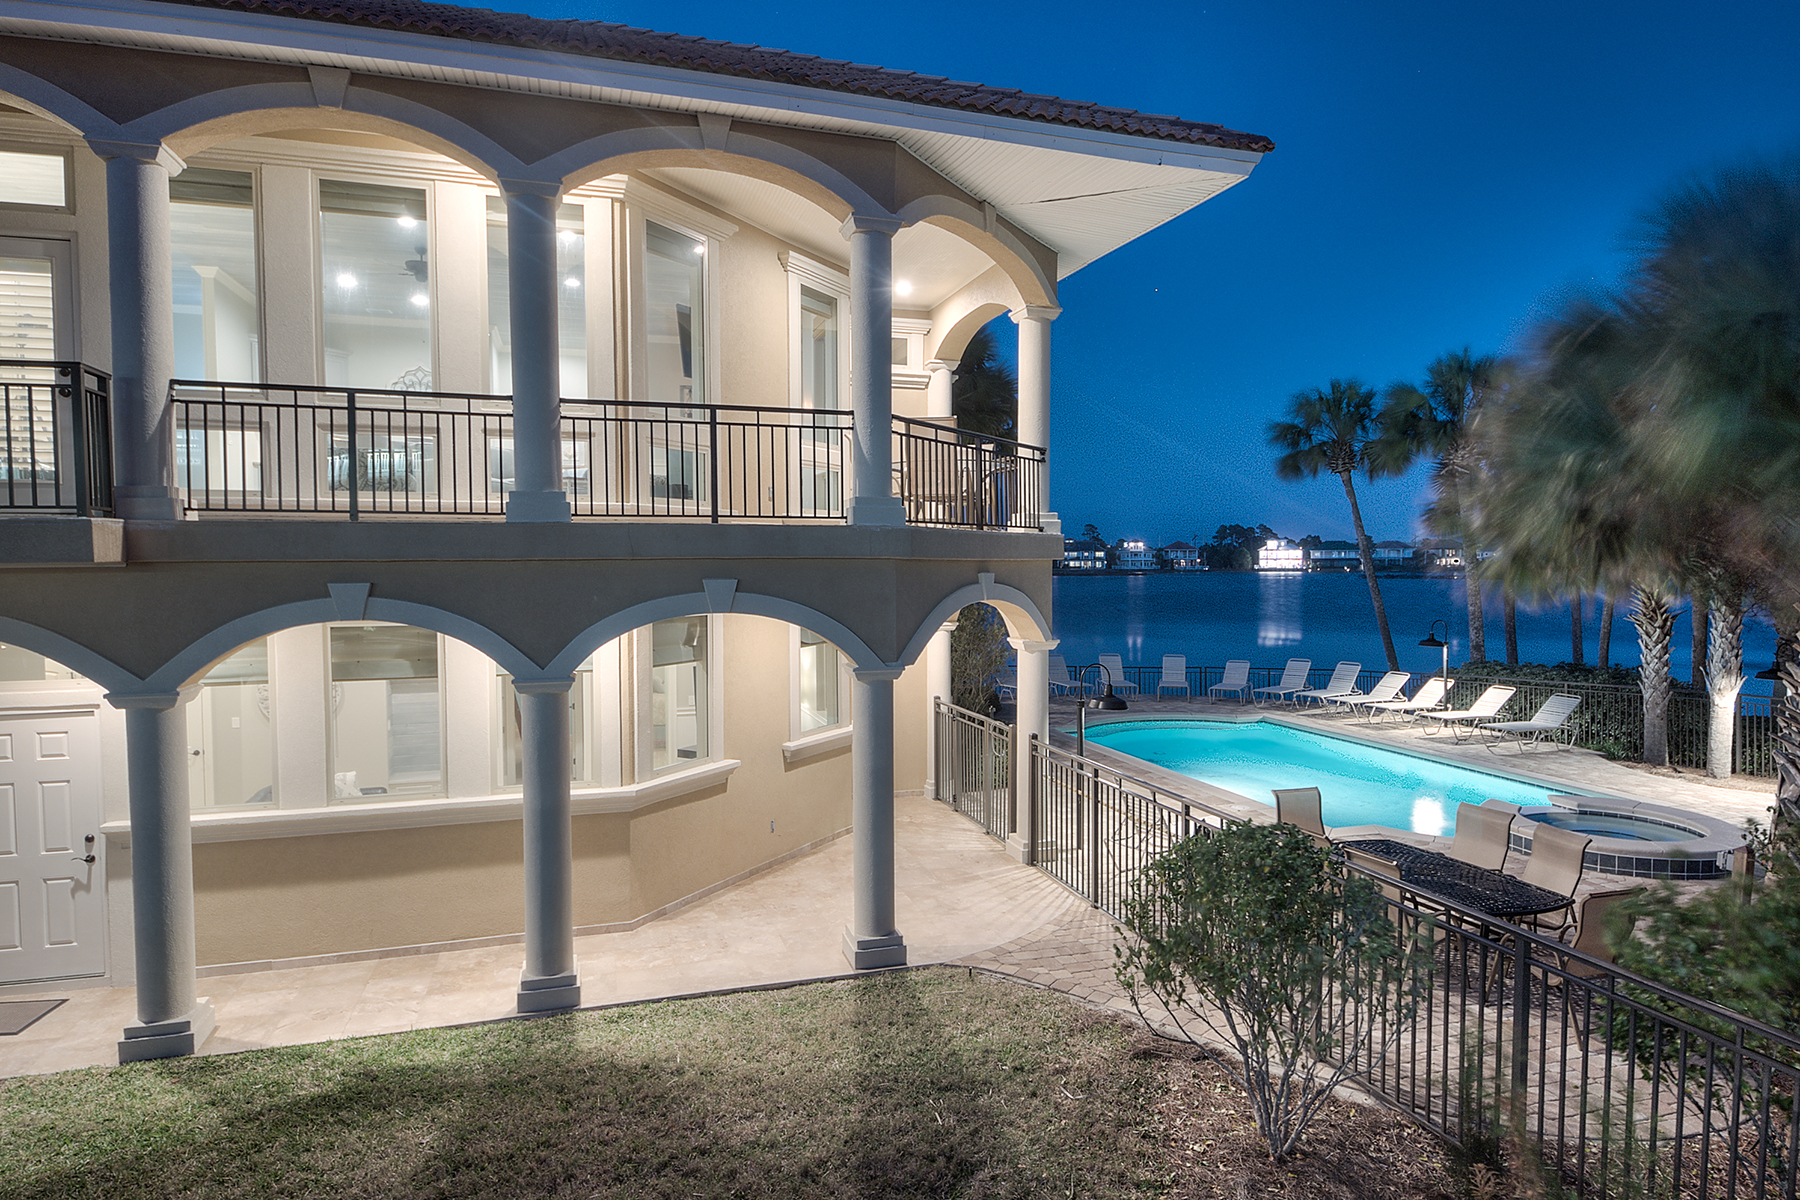 Casa Unifamiliar por un Venta en LAKEFRONT MEDITERRANEAN WITH GULF VIEW 4664 Destiny Way Destin, Florida, 32541 Estados Unidos